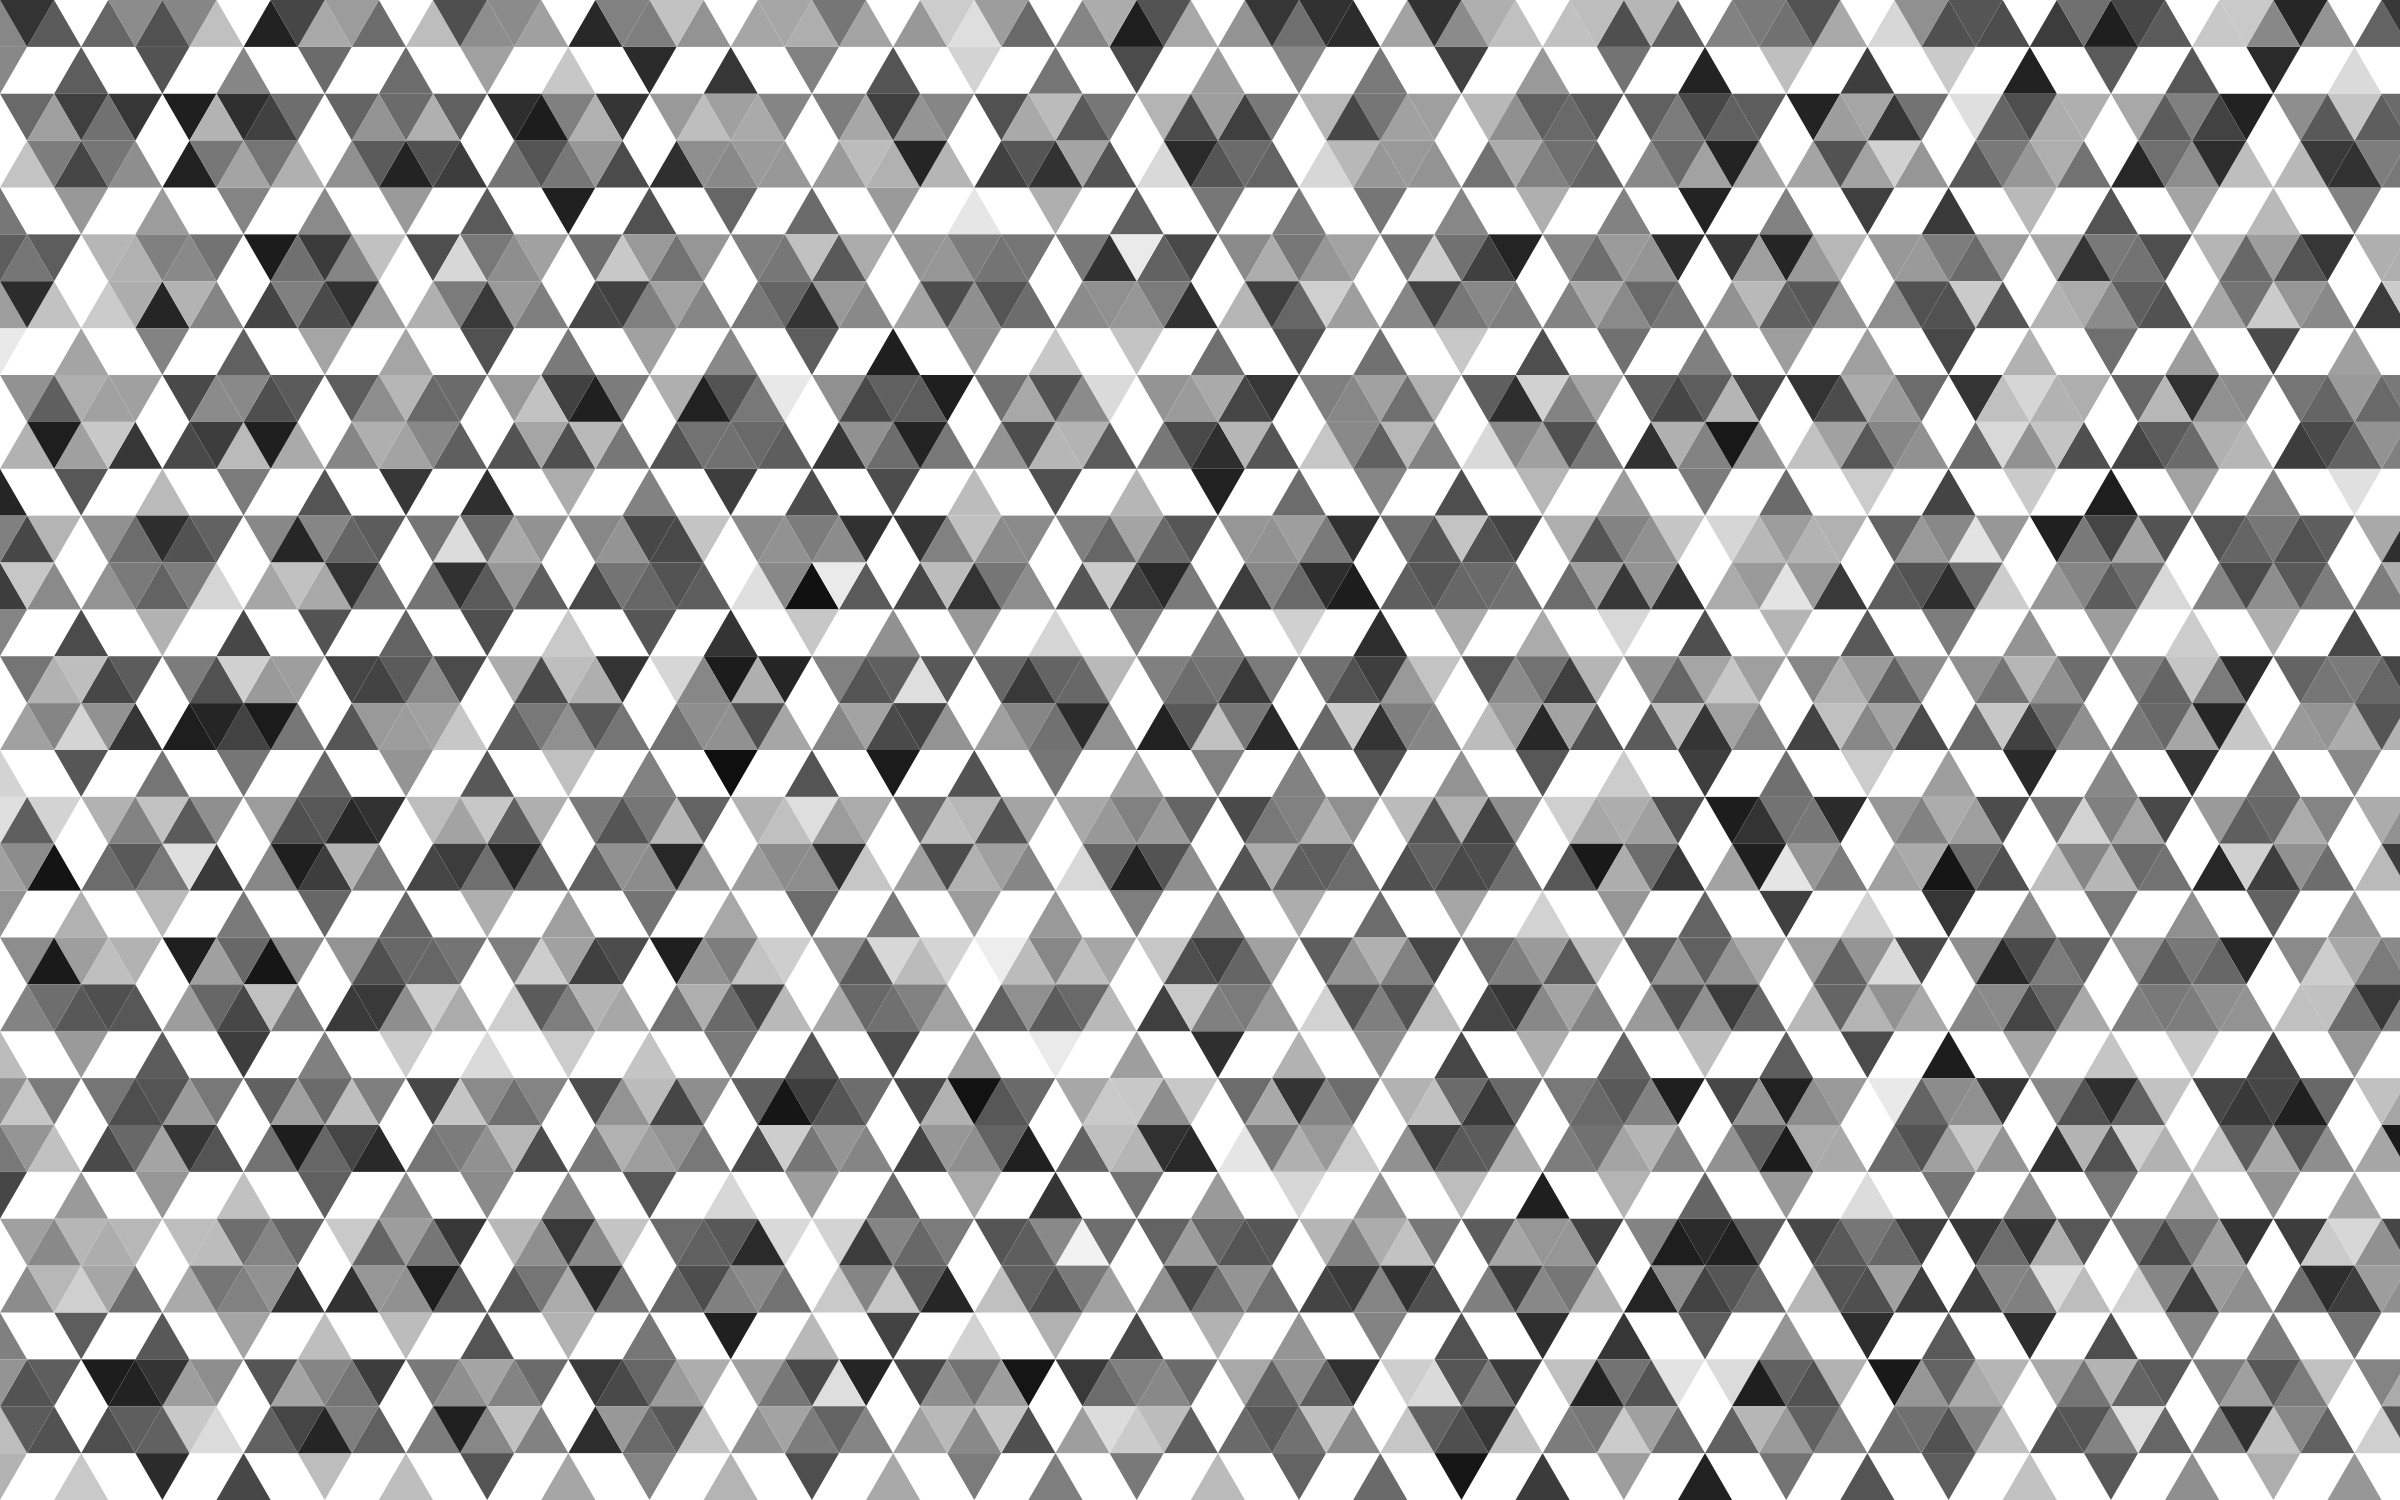 Geometric Pattern Mesmerizing Clipart  Grayscale Geometric Pattern Inspiration